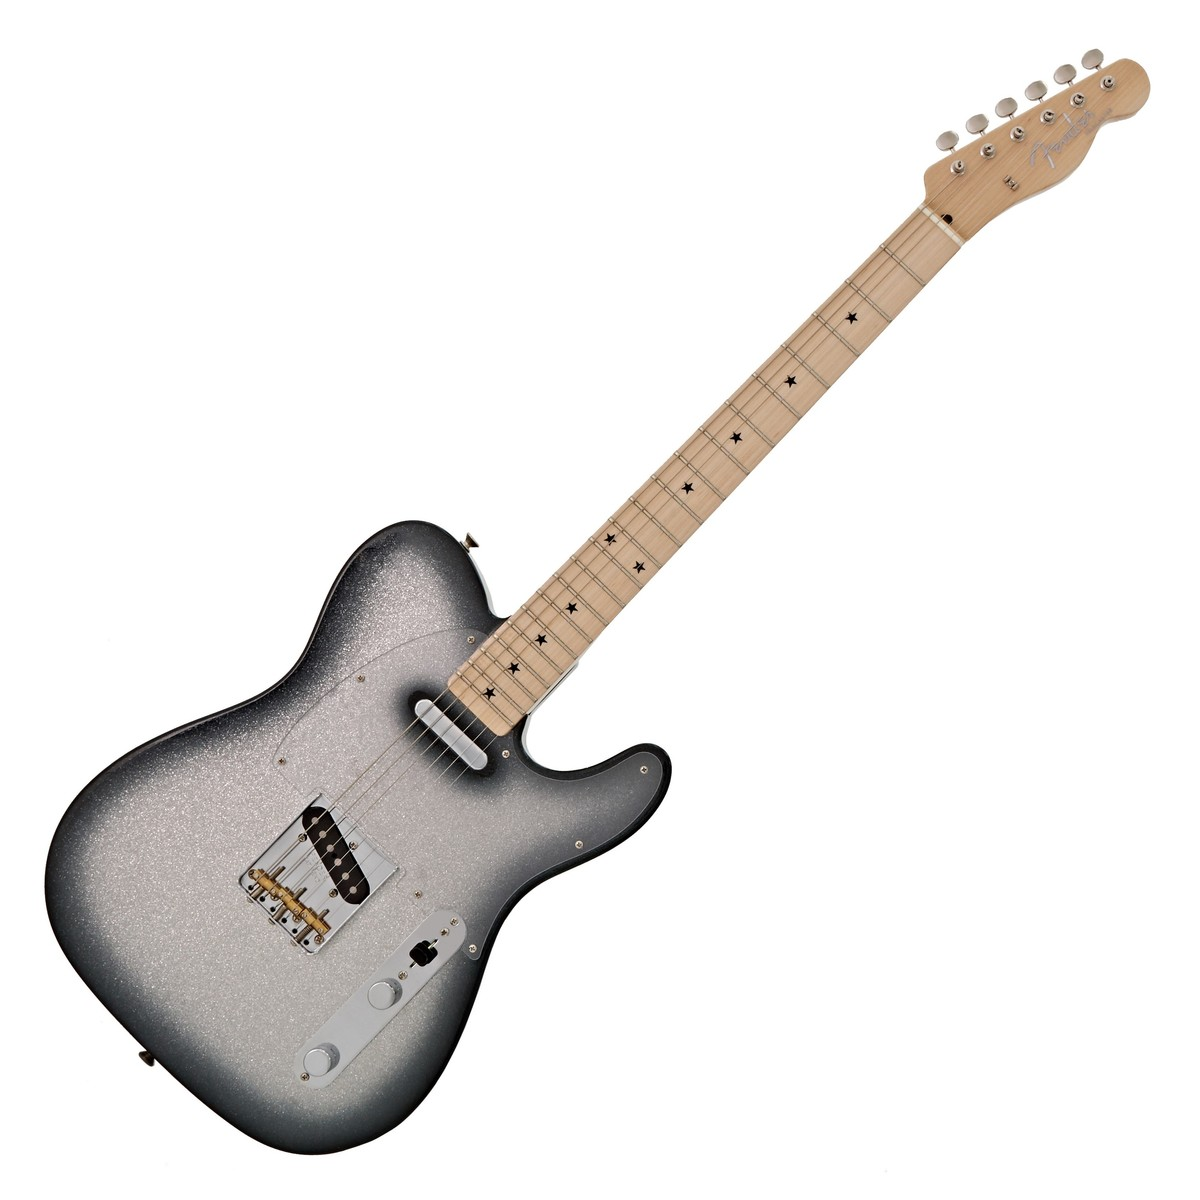 Fender telecaster serial number dating rifles